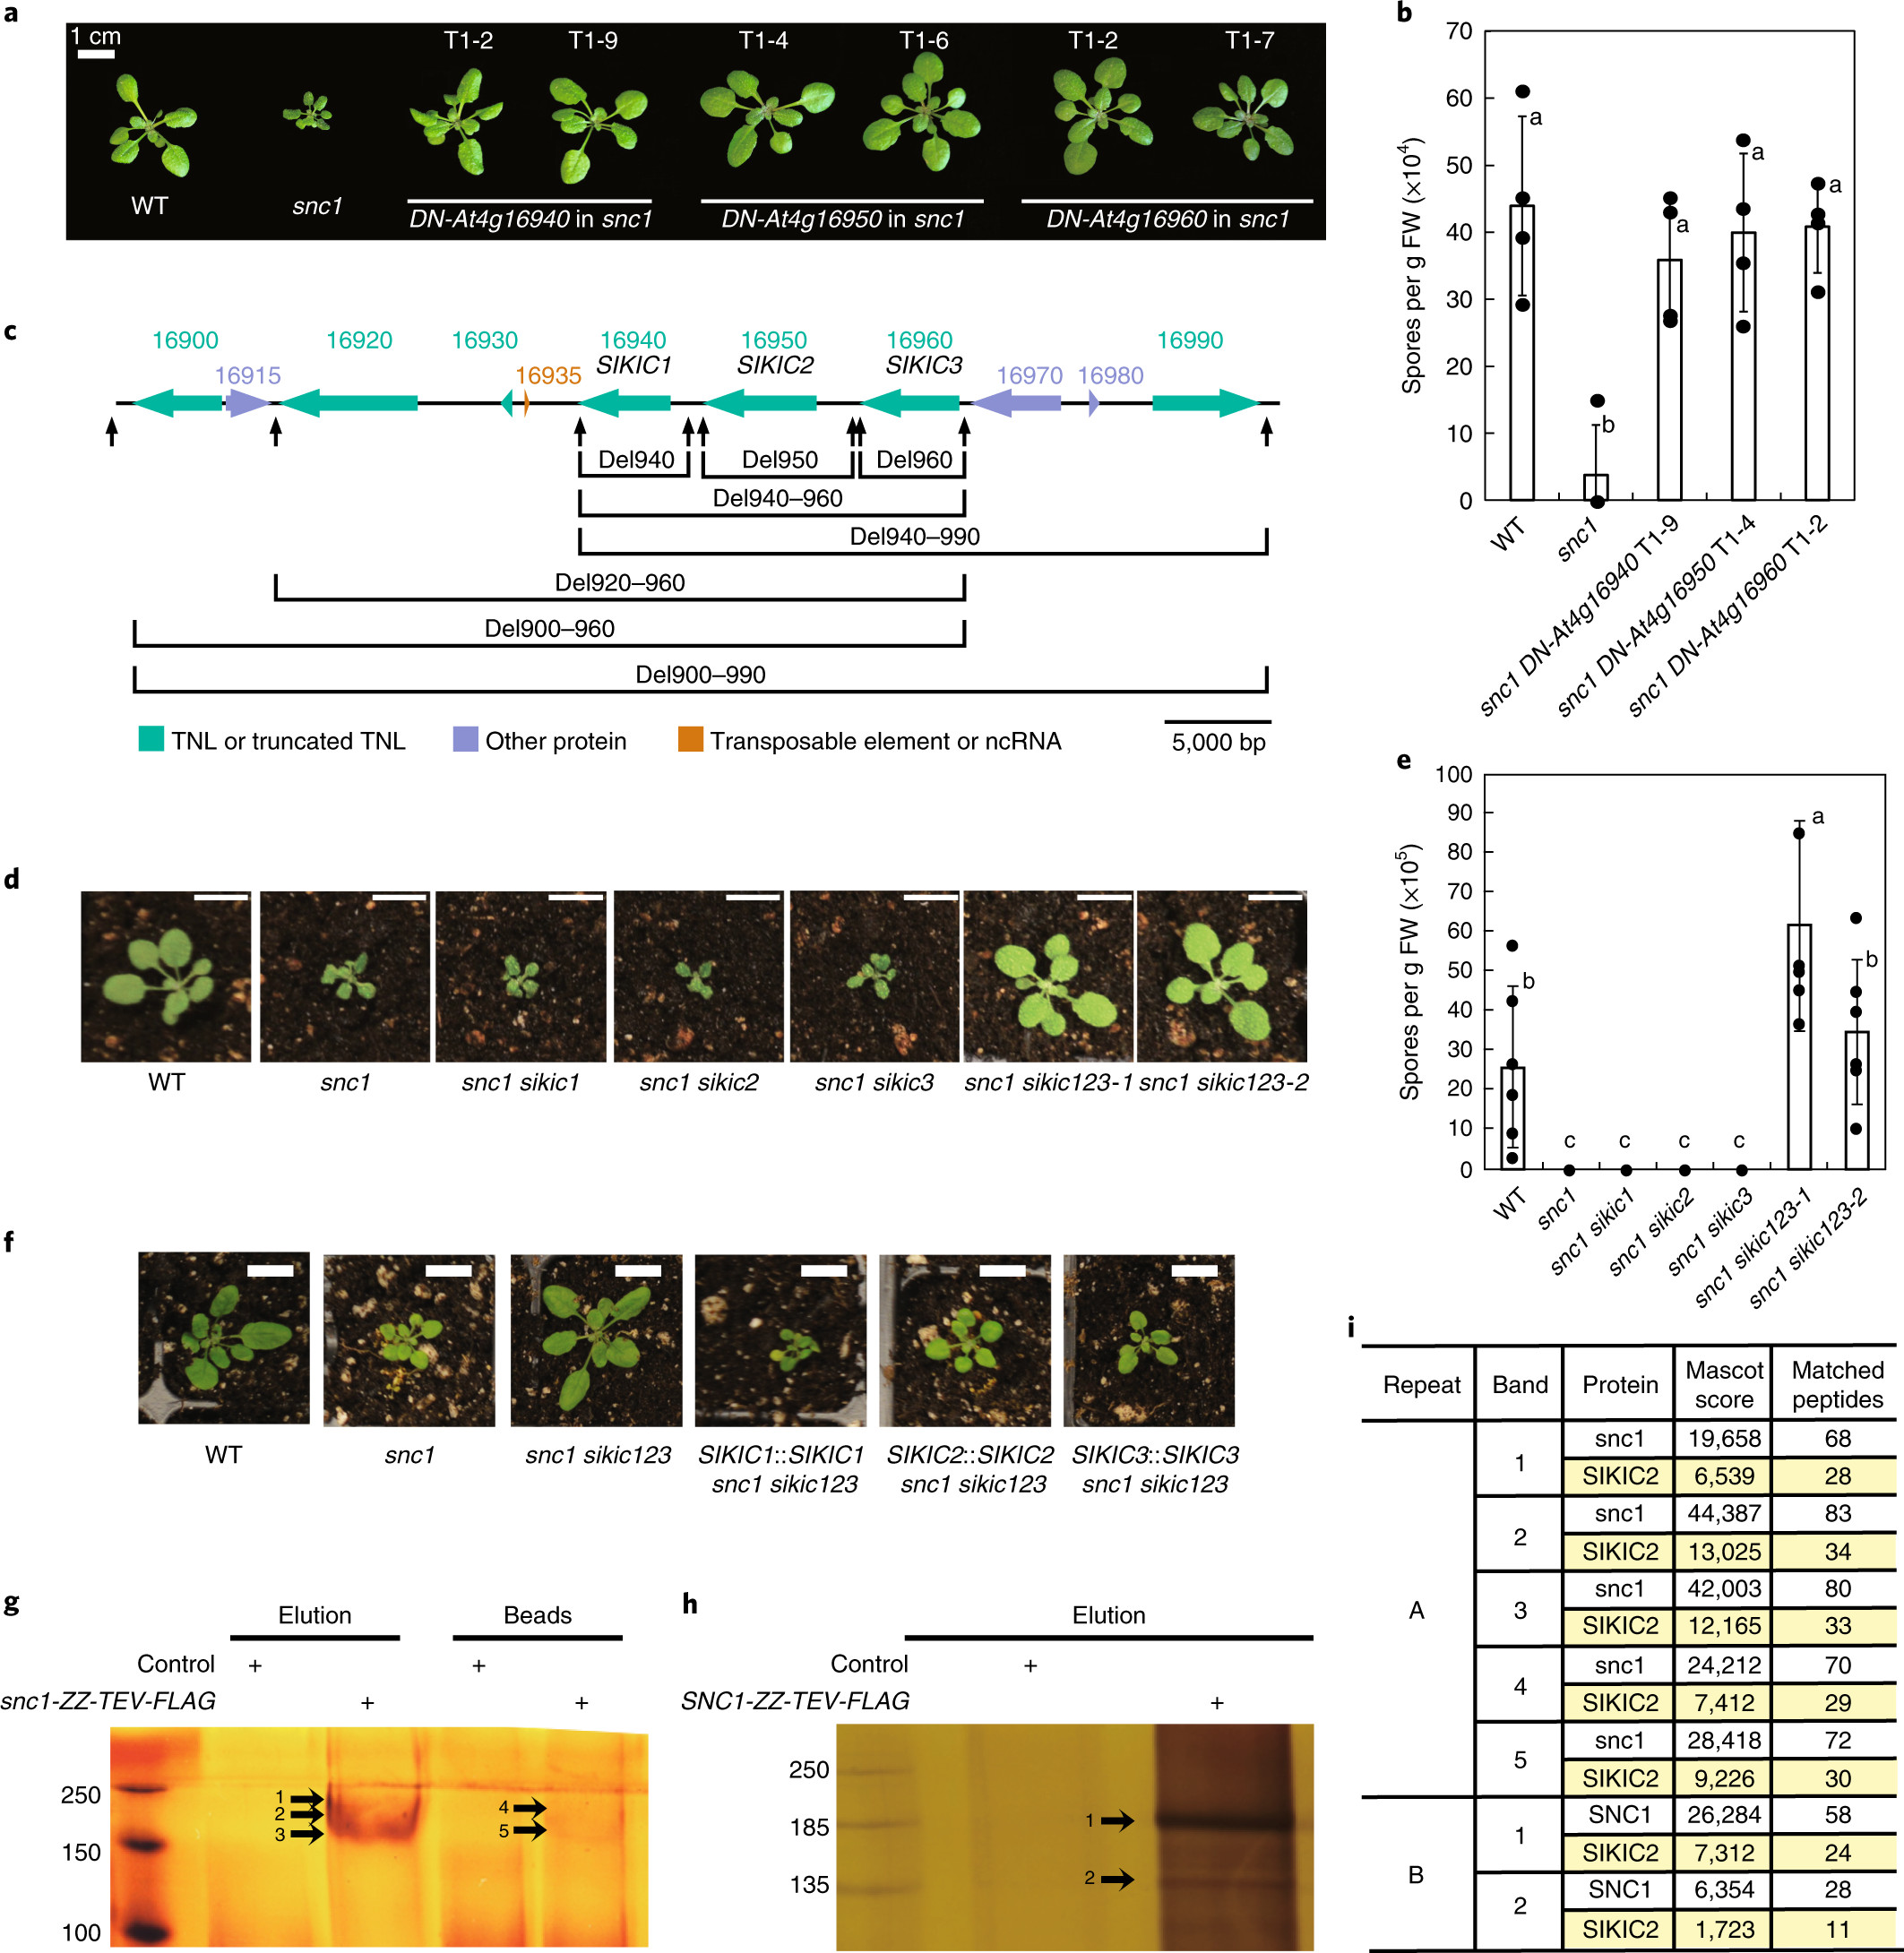 Individual ponents of paired typical NLR immune receptors are regulated by distinct E3 ligases